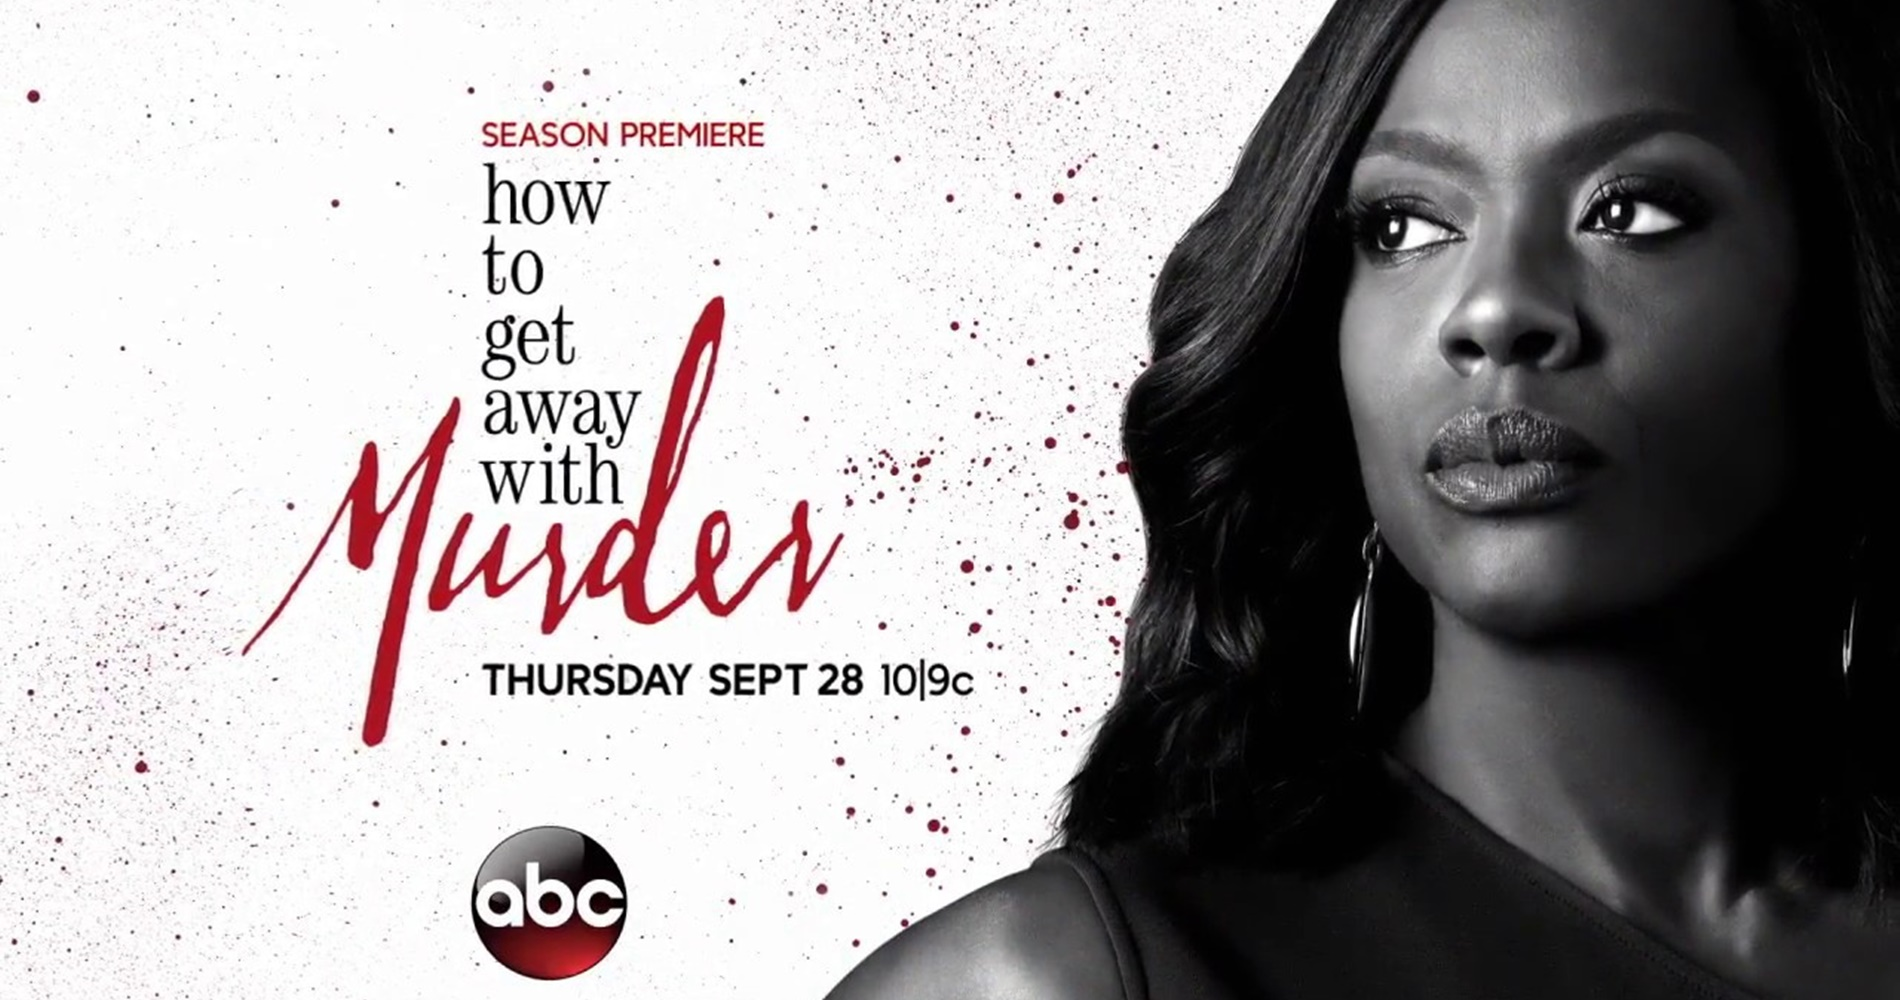 Black and white photo of Annalise from How To Get Away With Murder., movies/tv, pop culture, wdc-slideshow